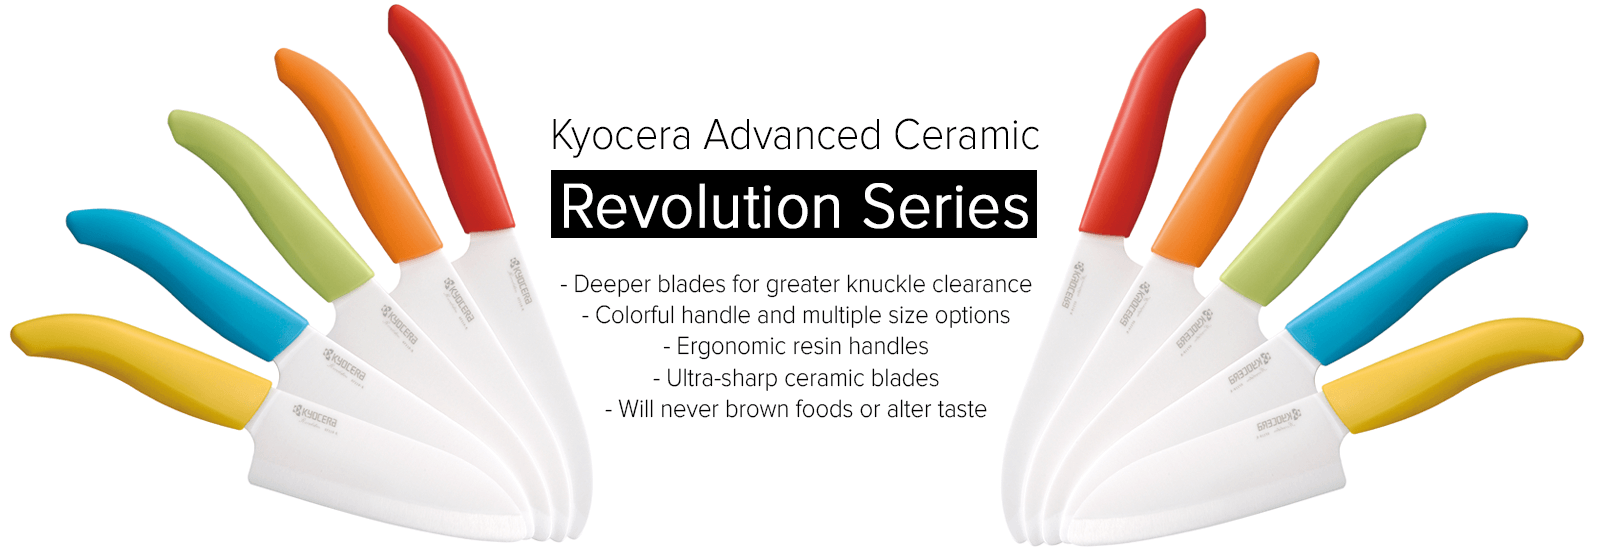 kyocera Revolution Series